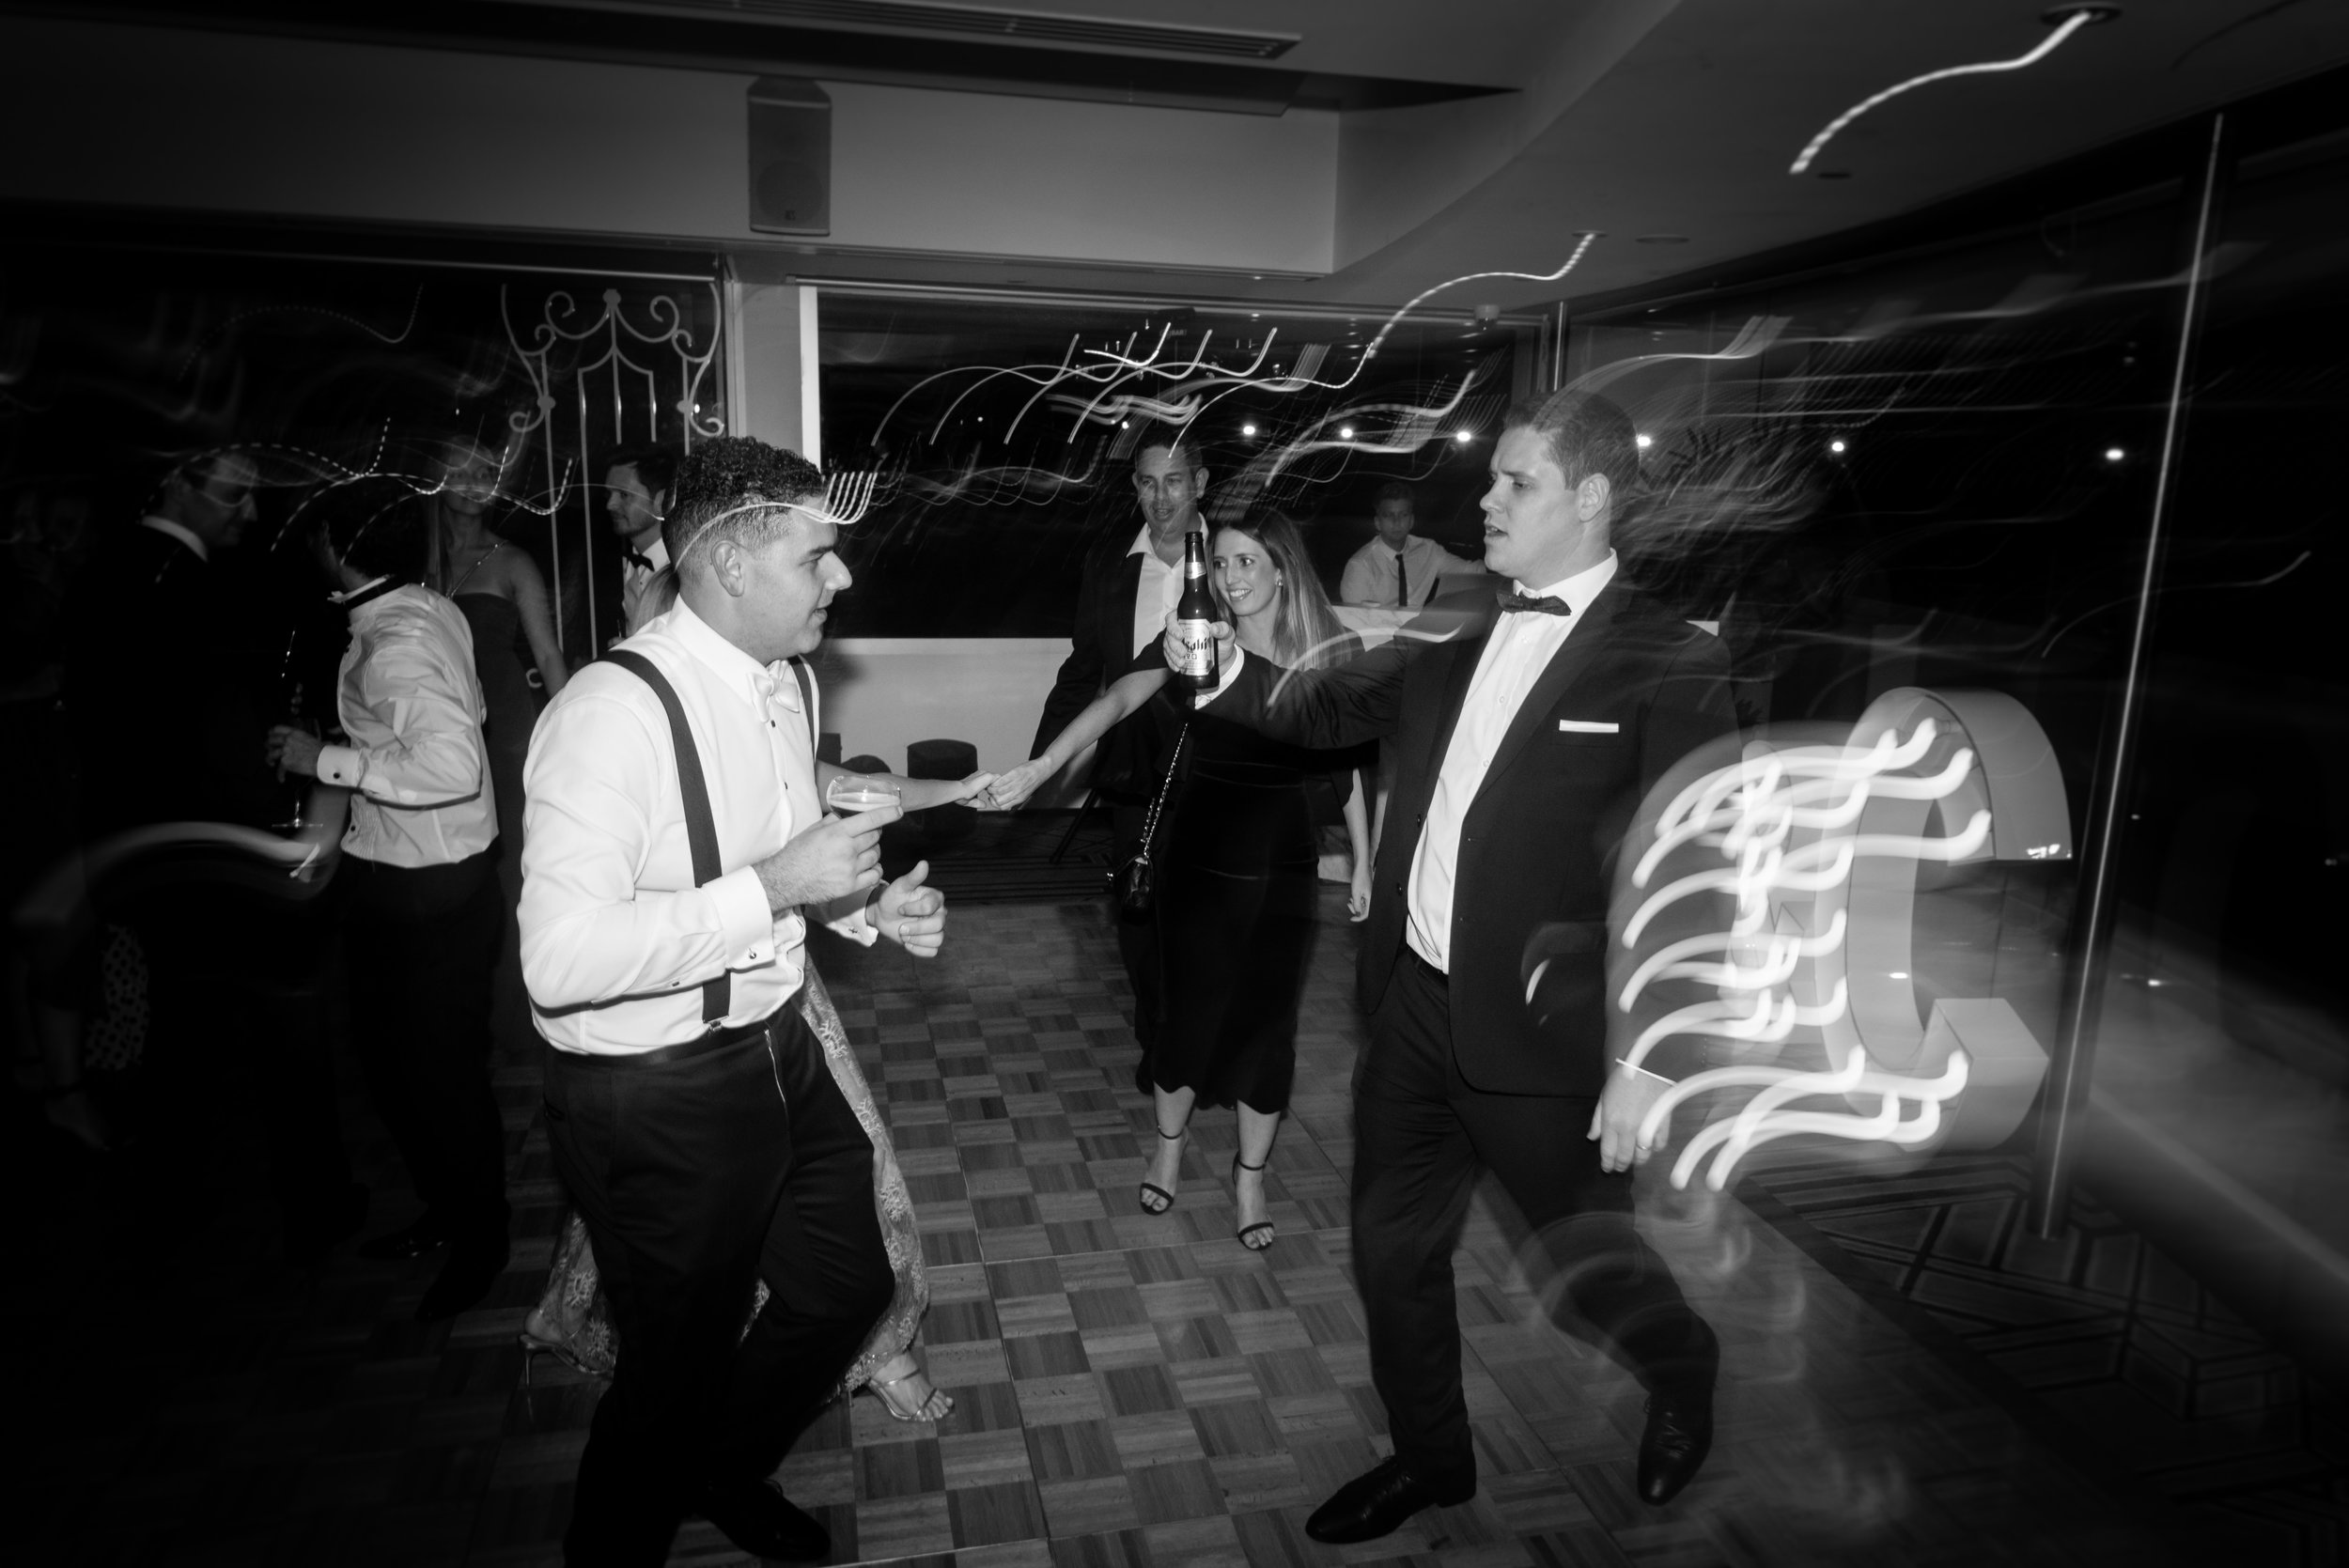 black-bird-brisbane-wedding-photography-film-photography-beautiful-reception-dance-candid-tweed-coast-wedding-199.jpg